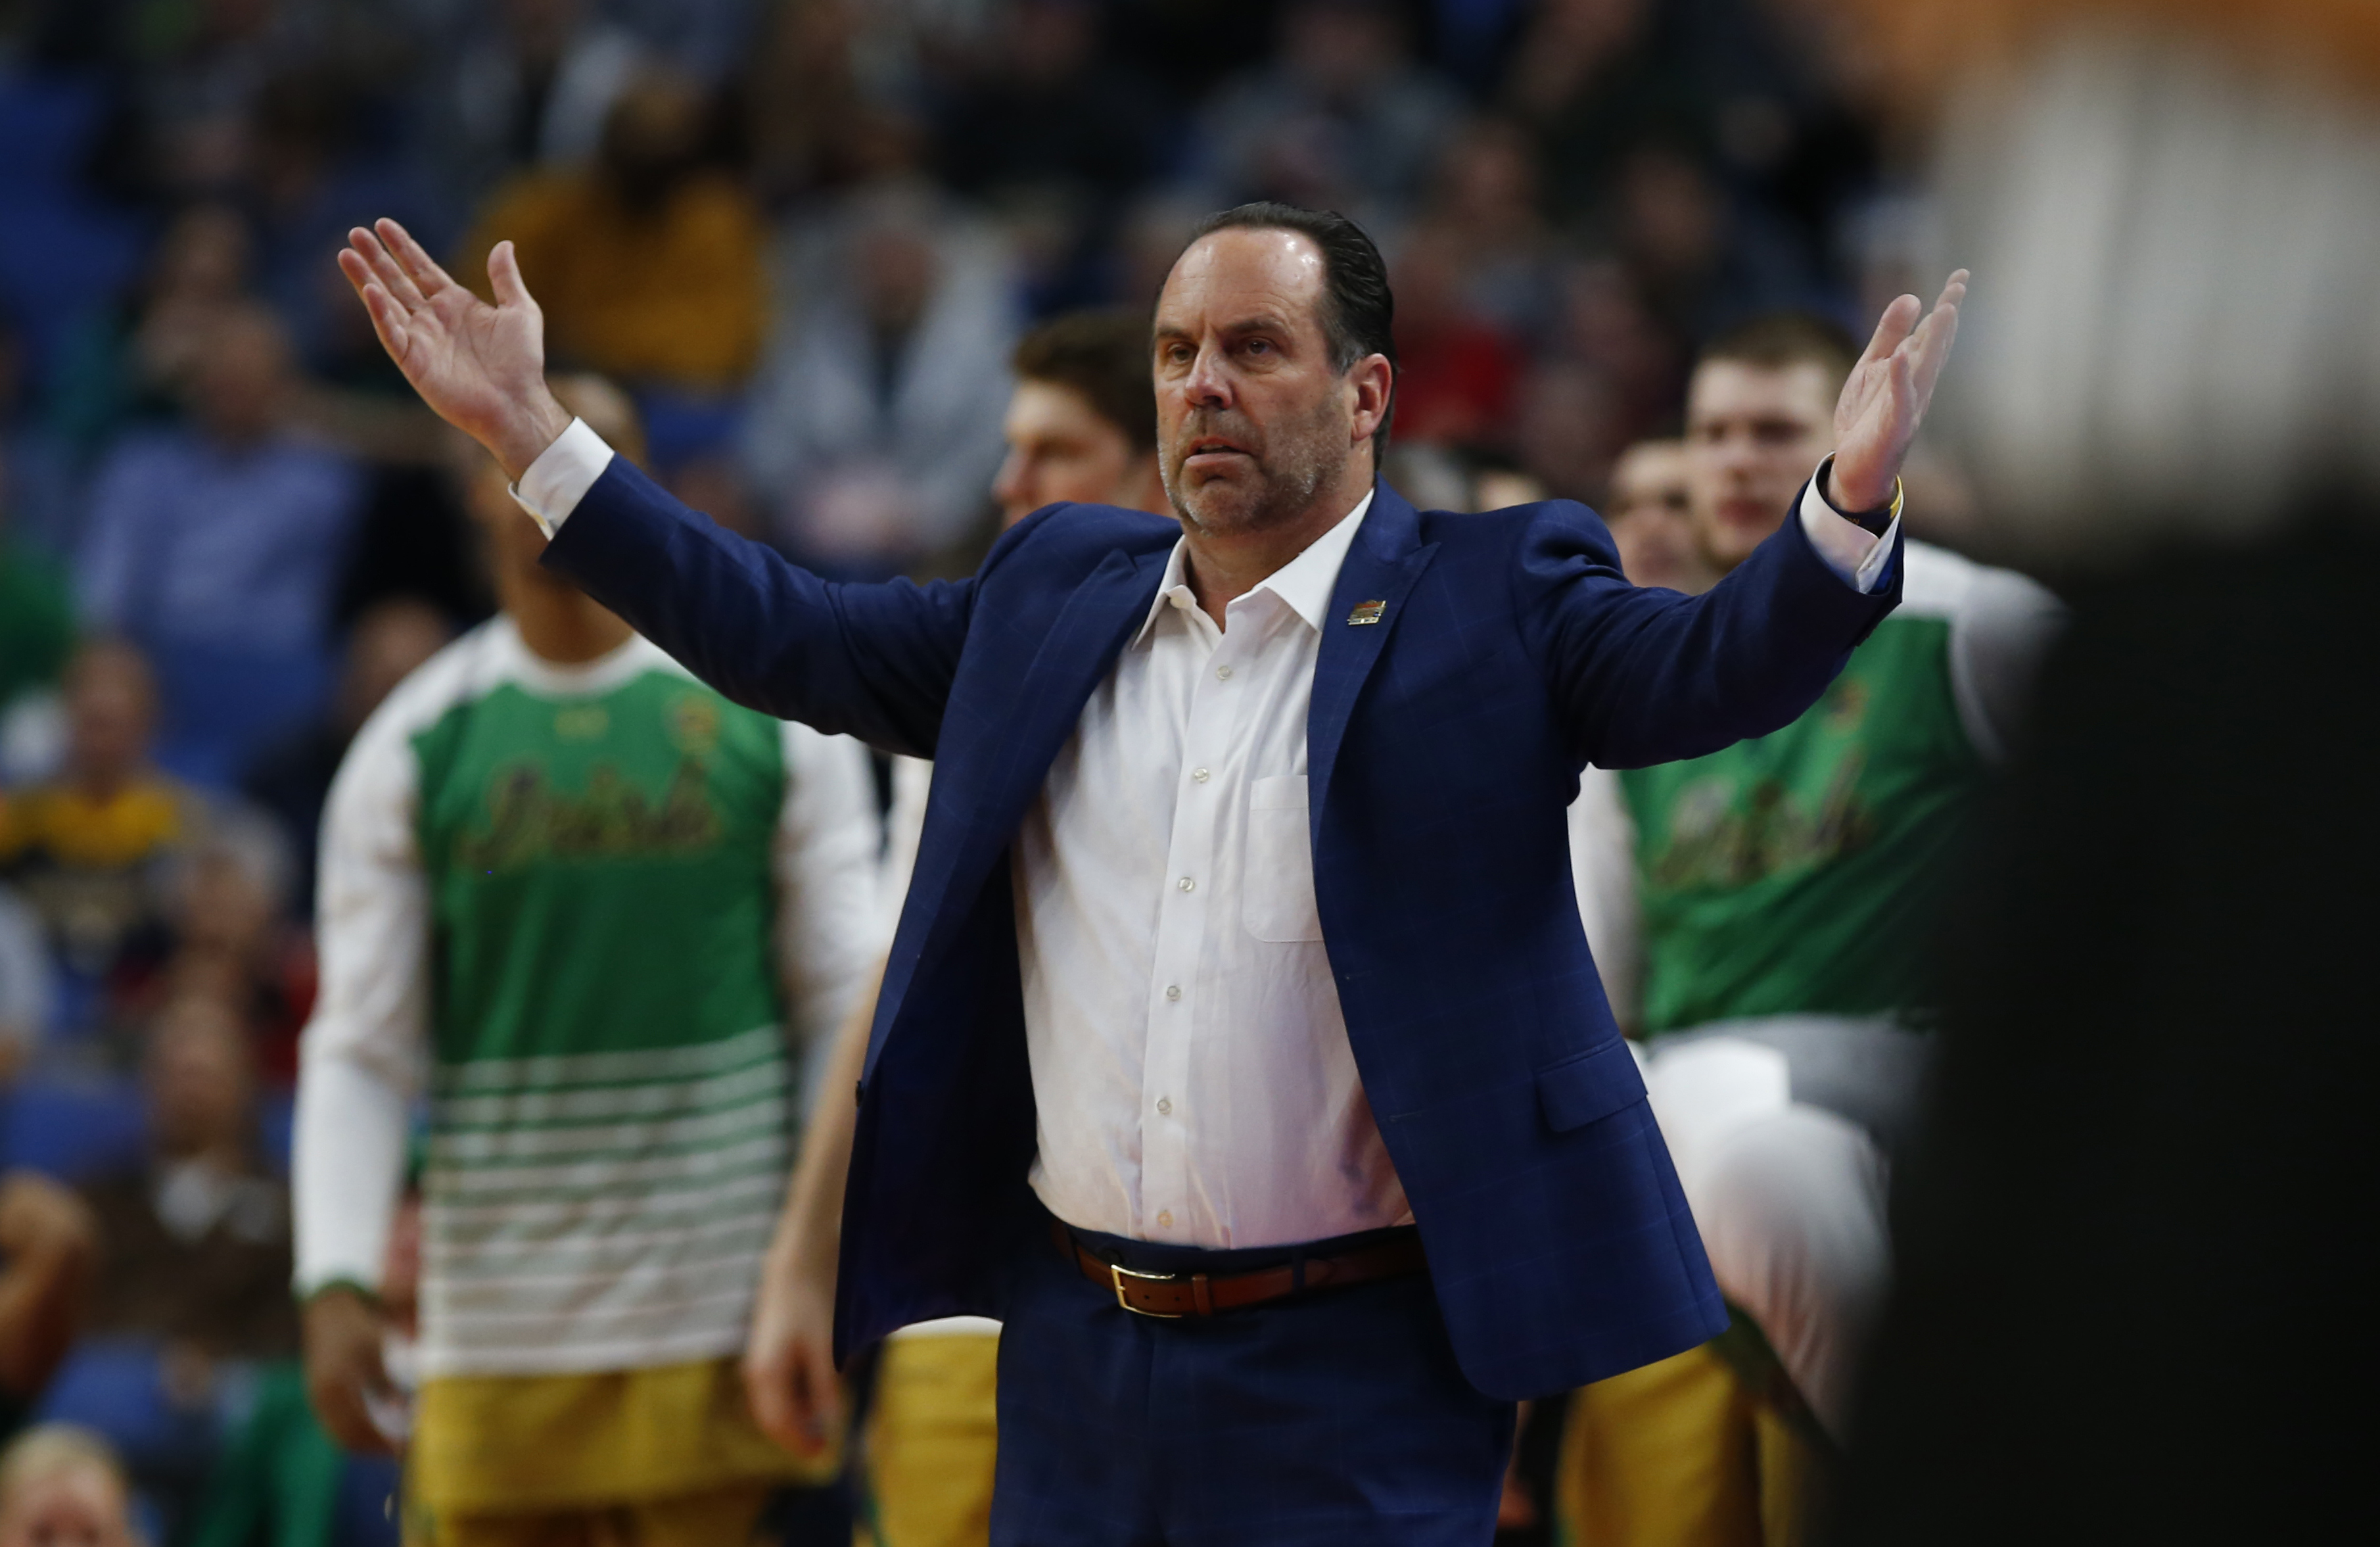 Notre Dame coach Mike Brey questions a call against West Virginia during first half action of the second round of the 2017 NCAA Men's Basketball Tournament at the KeyBank Center on Saturday, March 18, 2017. (Harry Scull Jr./Buffalo News)